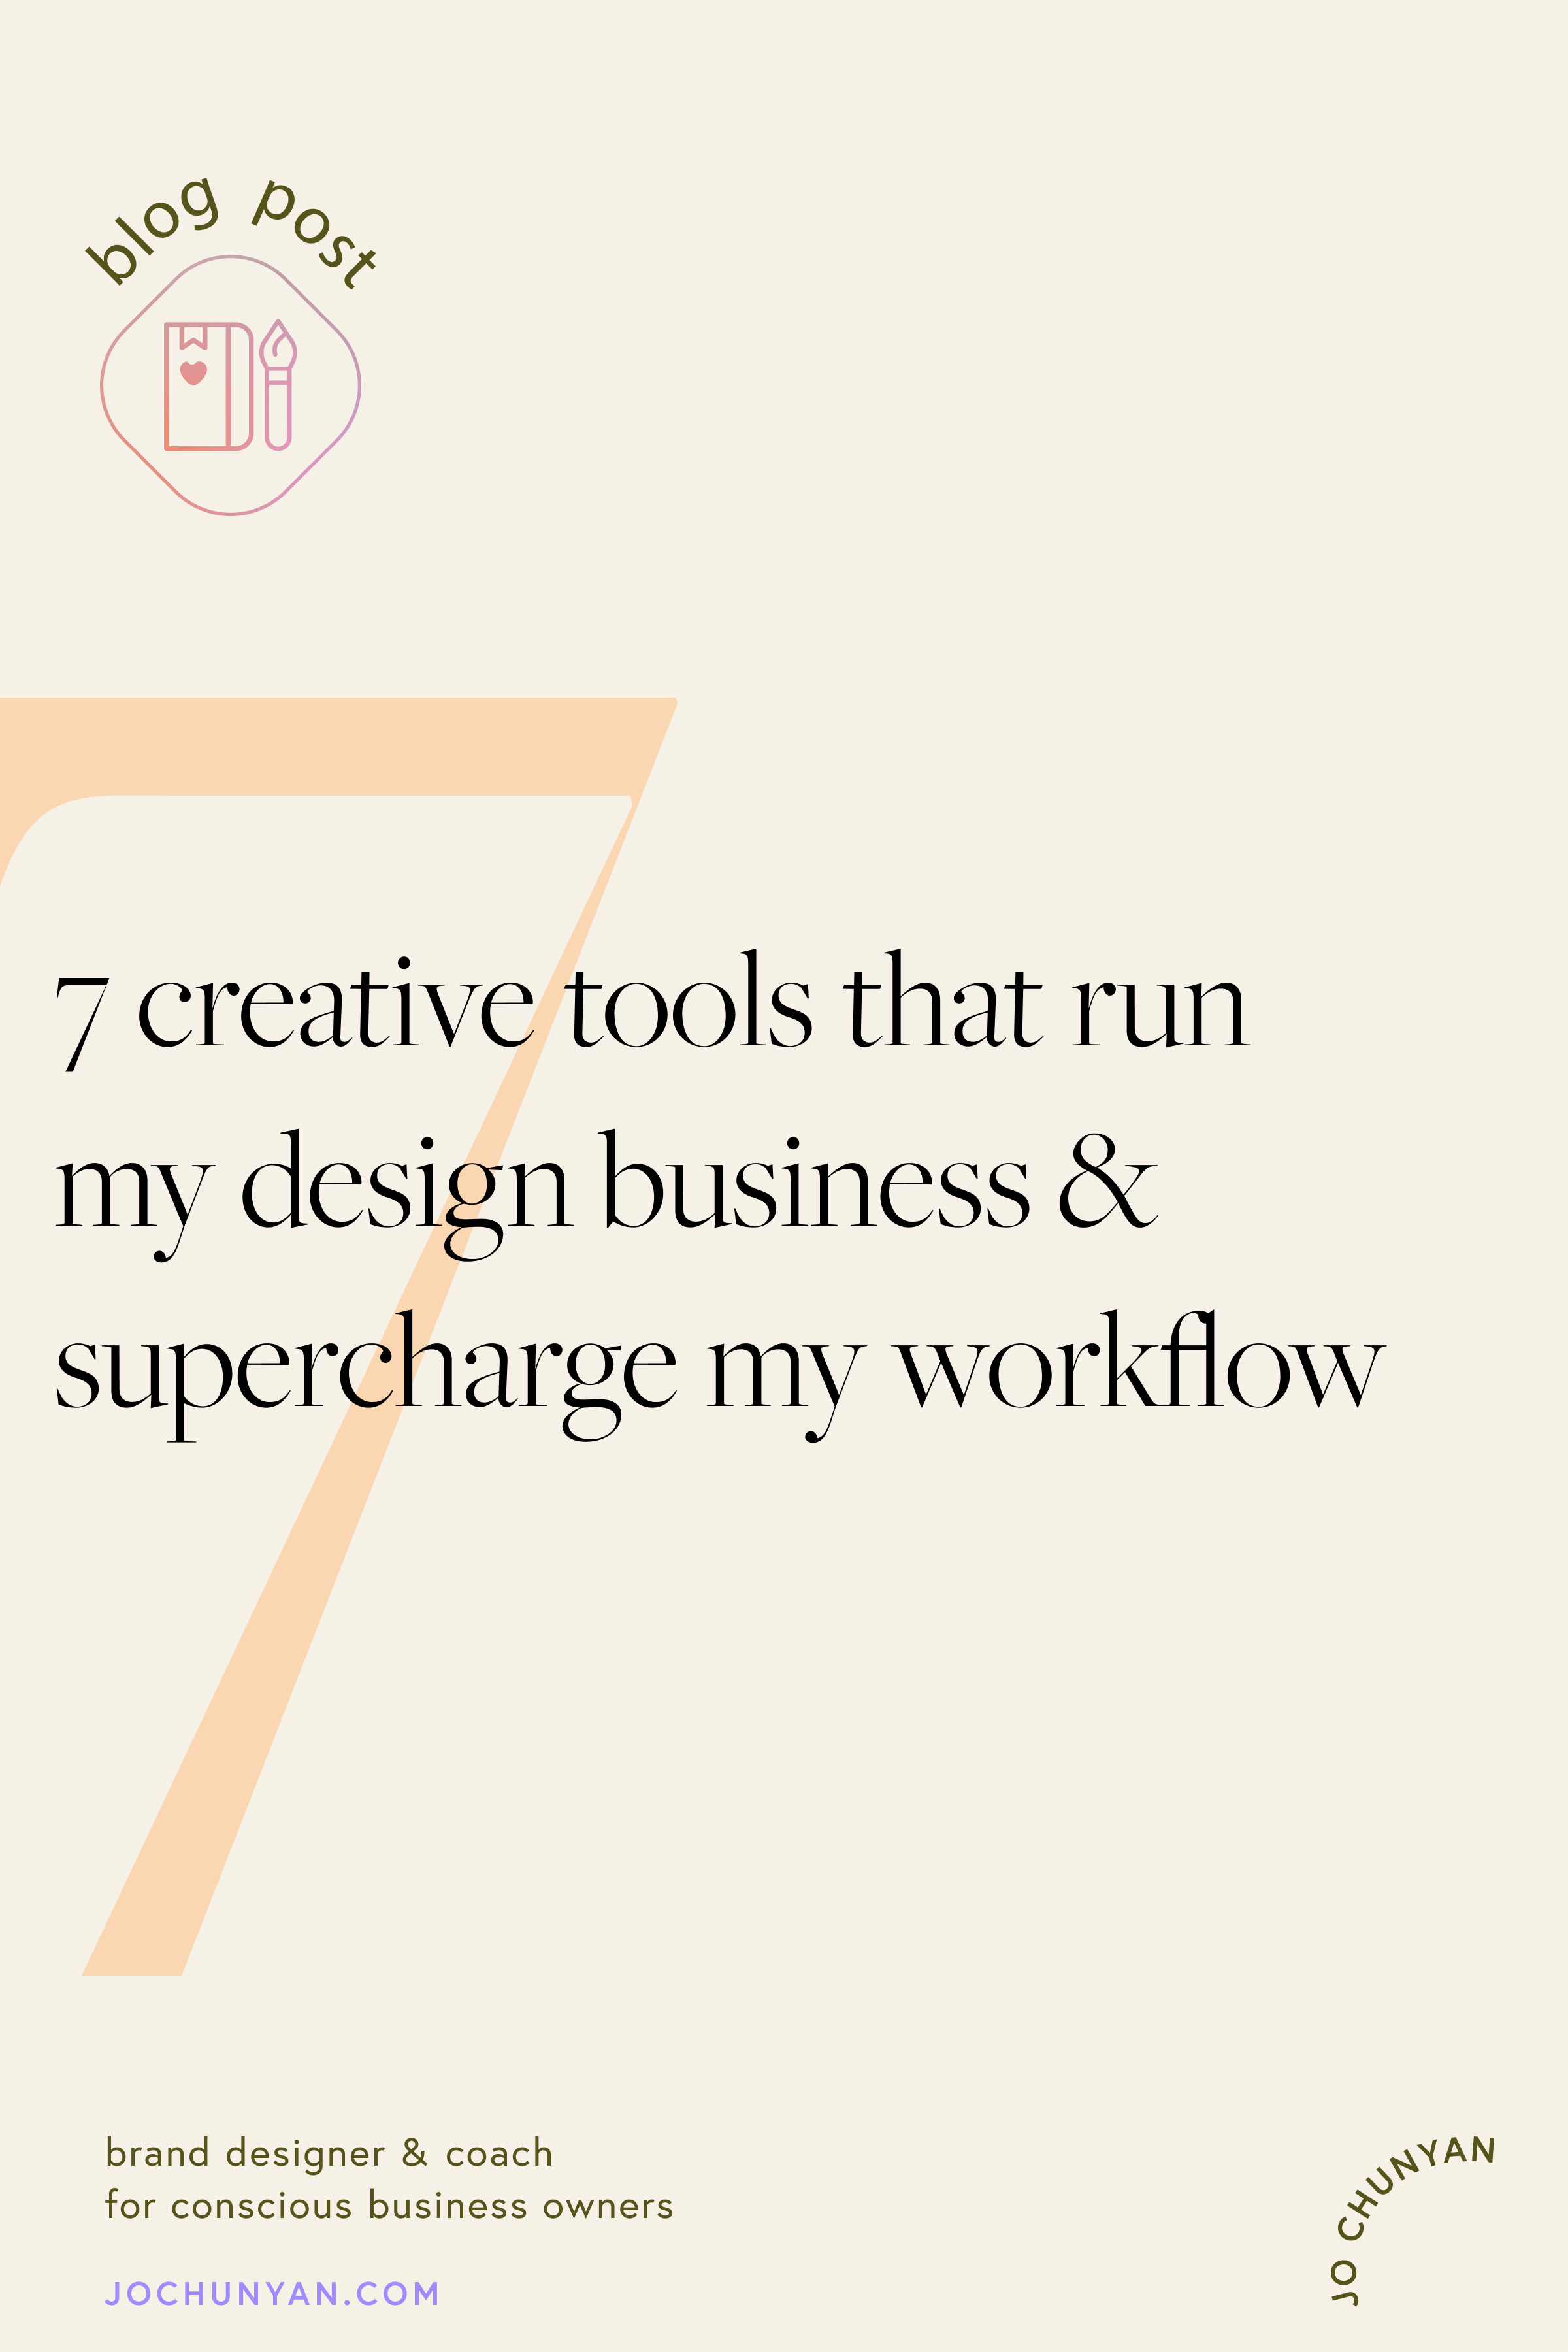 7 Creative Tools That Run My Design Business & Supercharge My Workflow